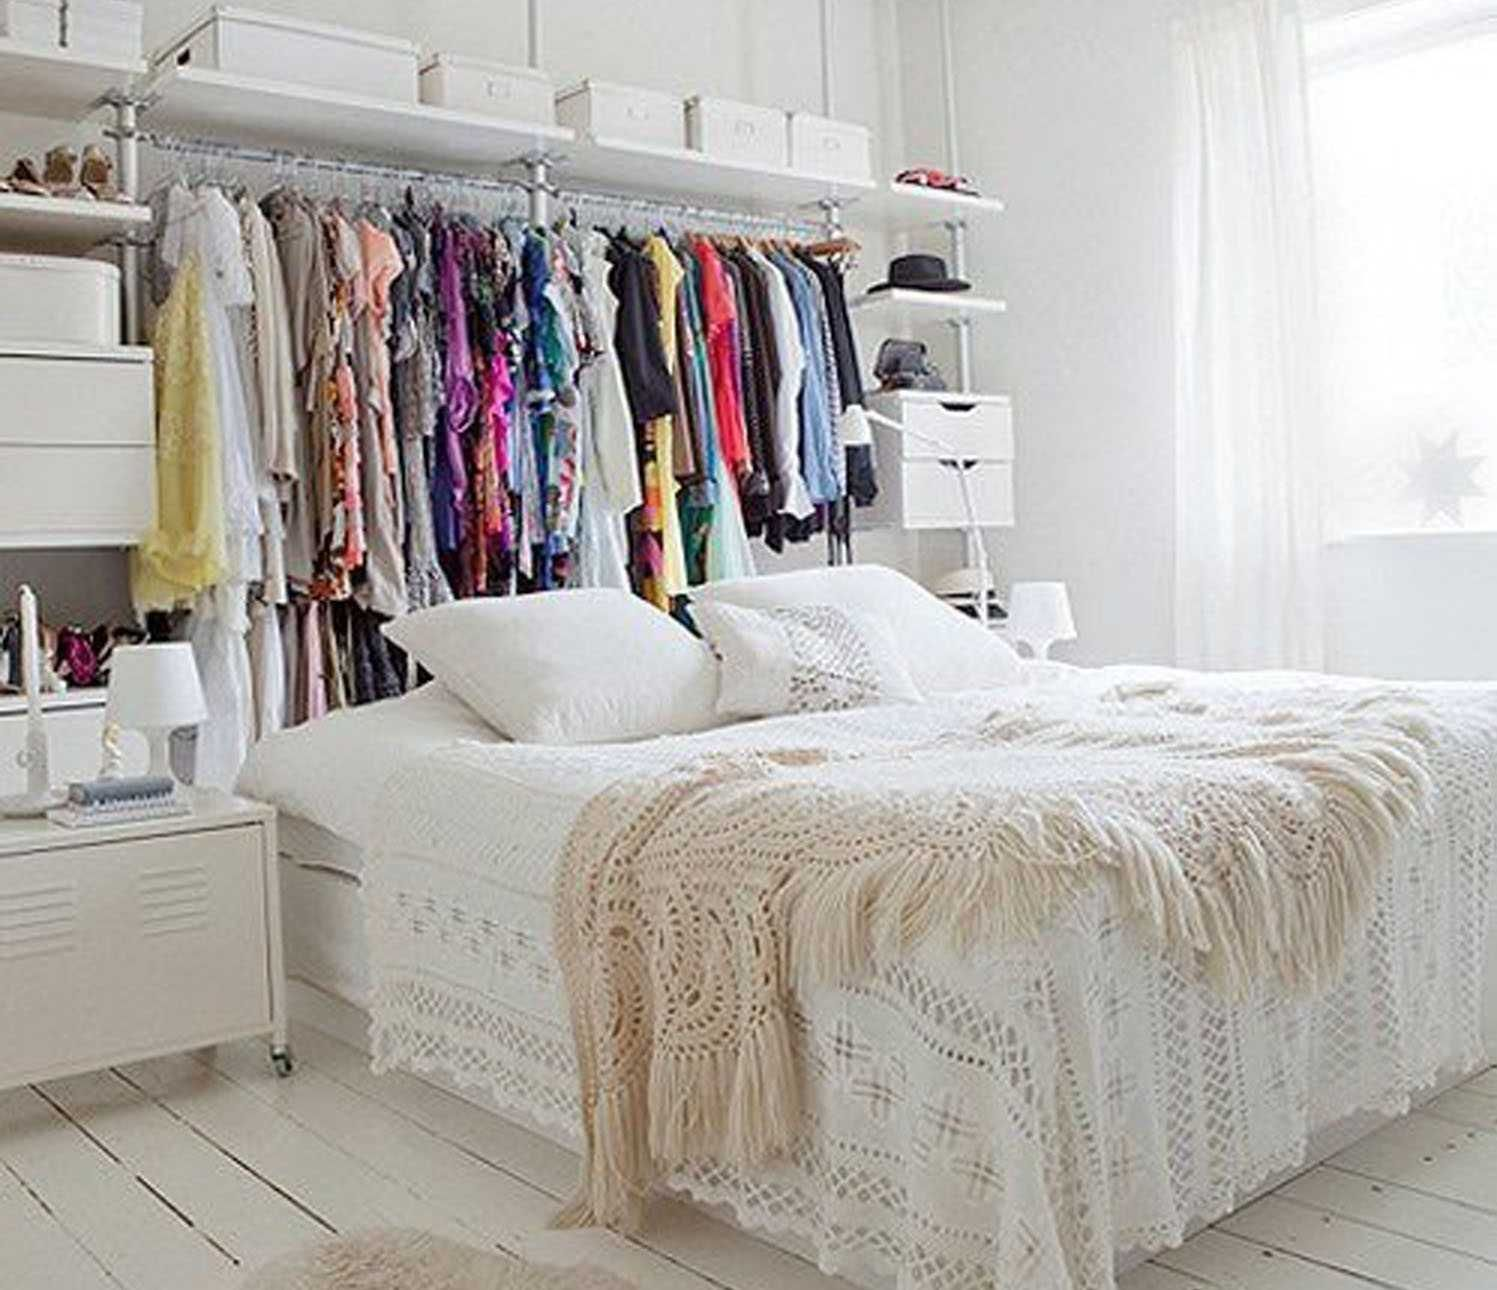 10 Storage Ideas For Bedrooms Without Closets Most Of The Awesome